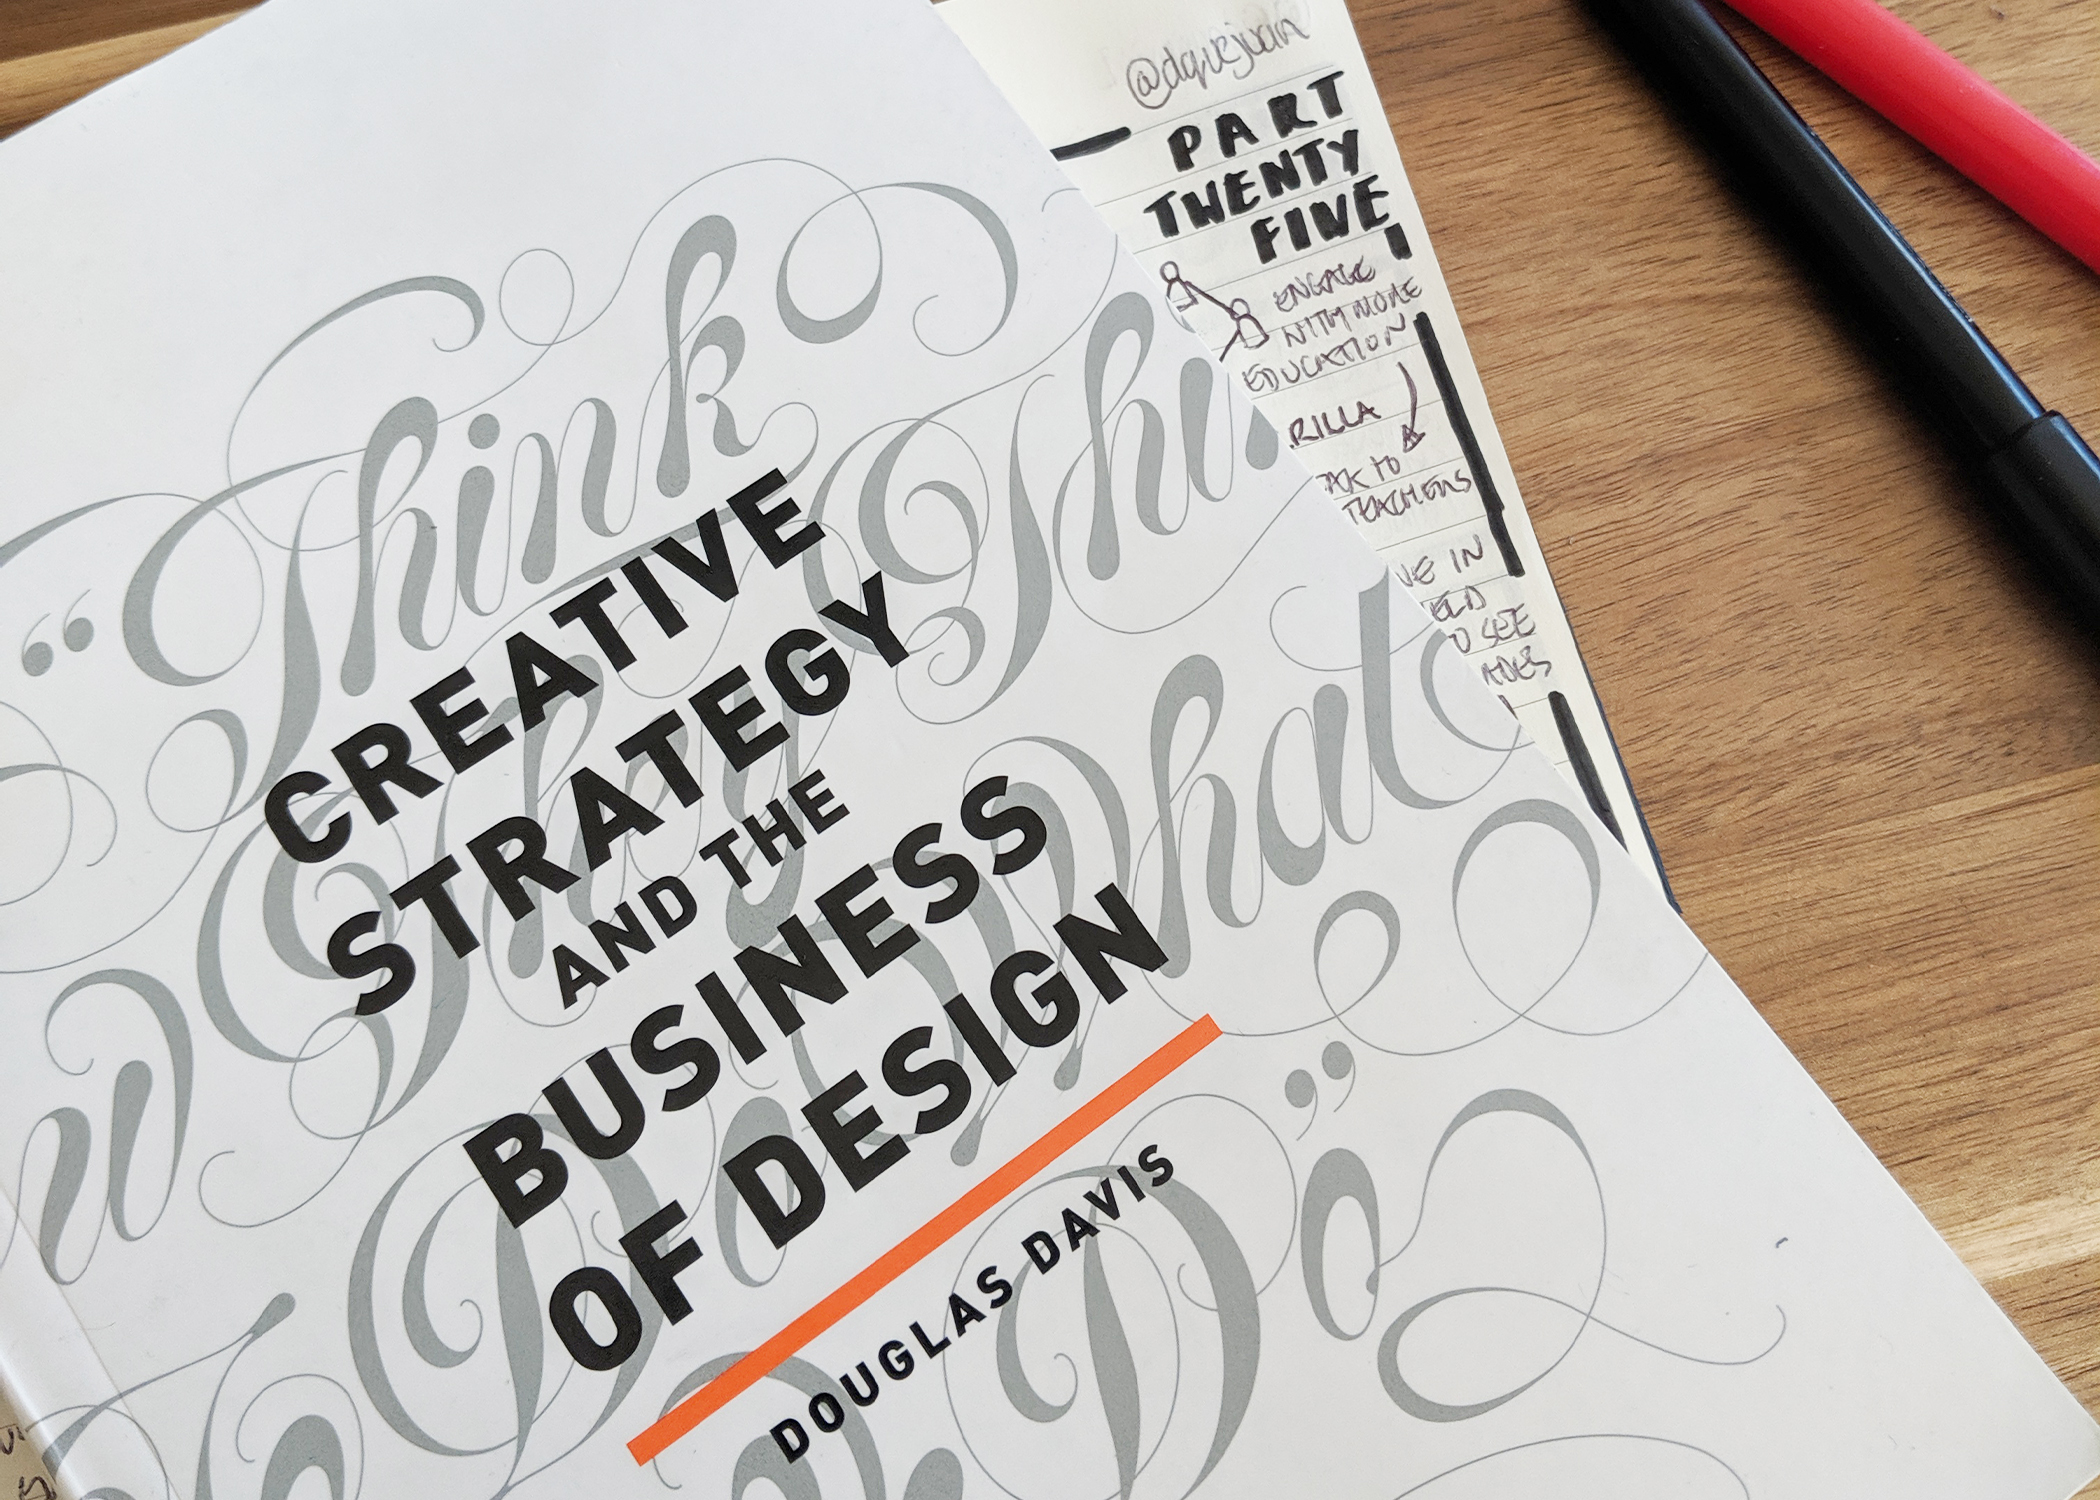 Creative-Strategy-And-The-Business-Of-Design-cover.jpg